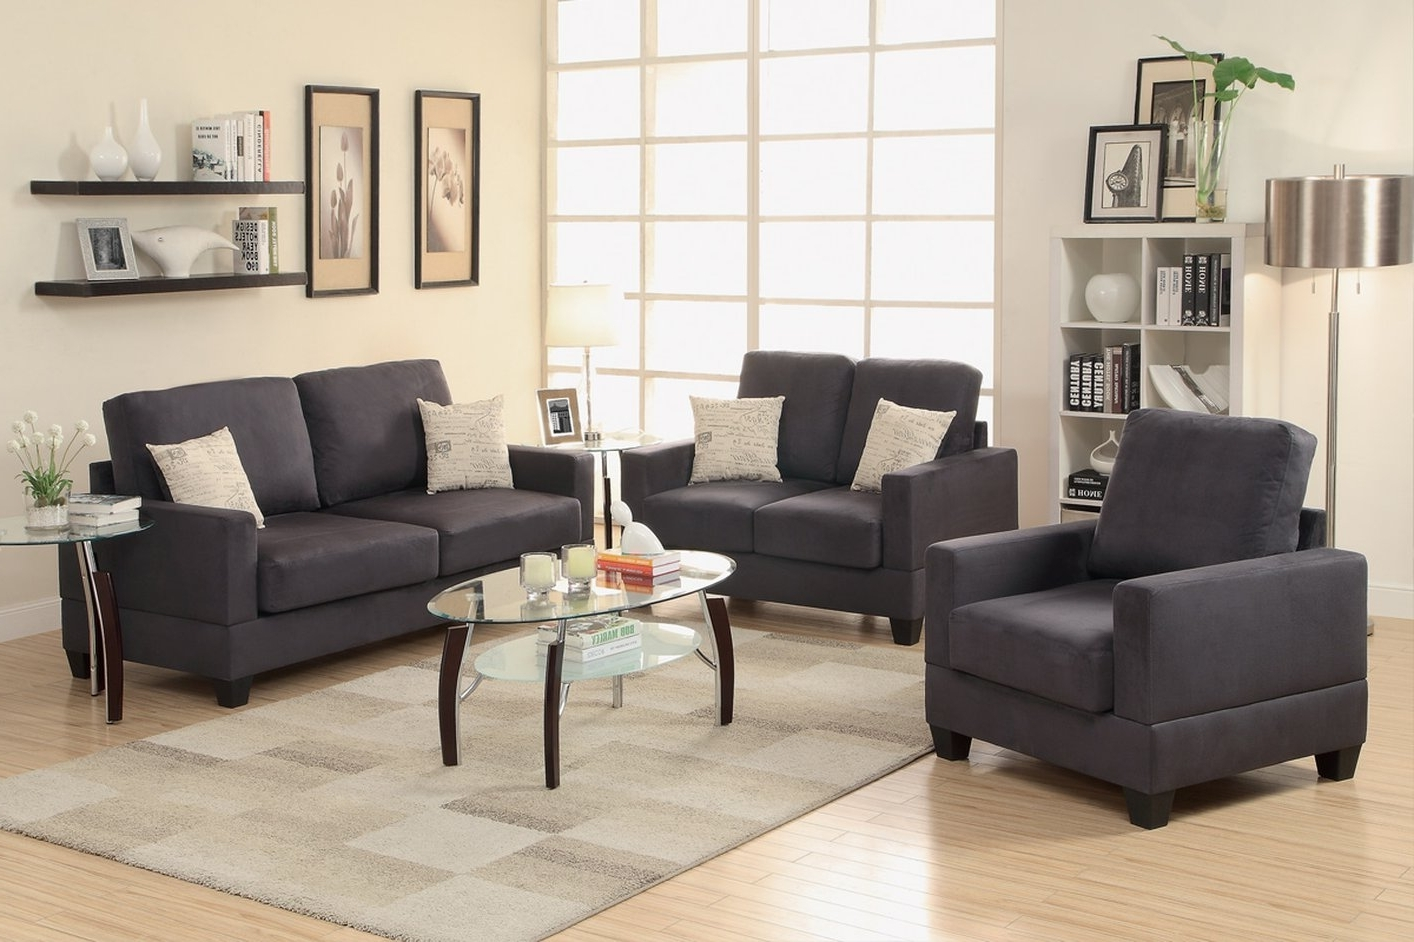 Sofa And Chairs – Home And Textiles Pertaining To Most Recent Sofa With Chairs (View 9 of 15)